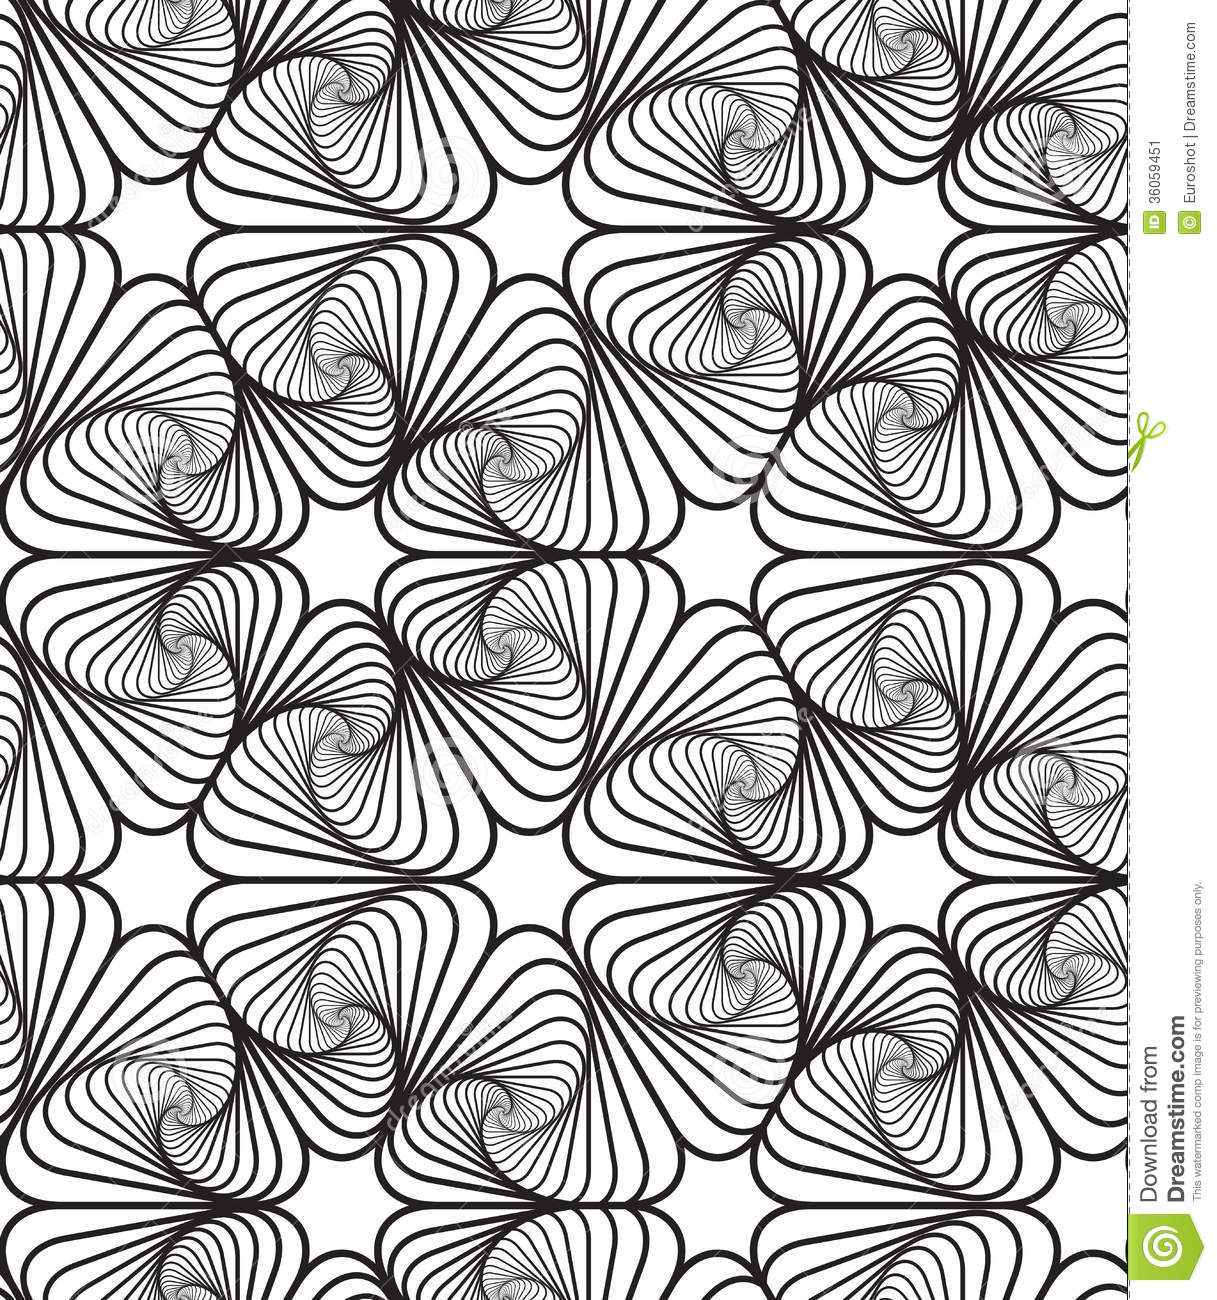 Beau Black And White Op Art Design Vector Seamless Pattern Background